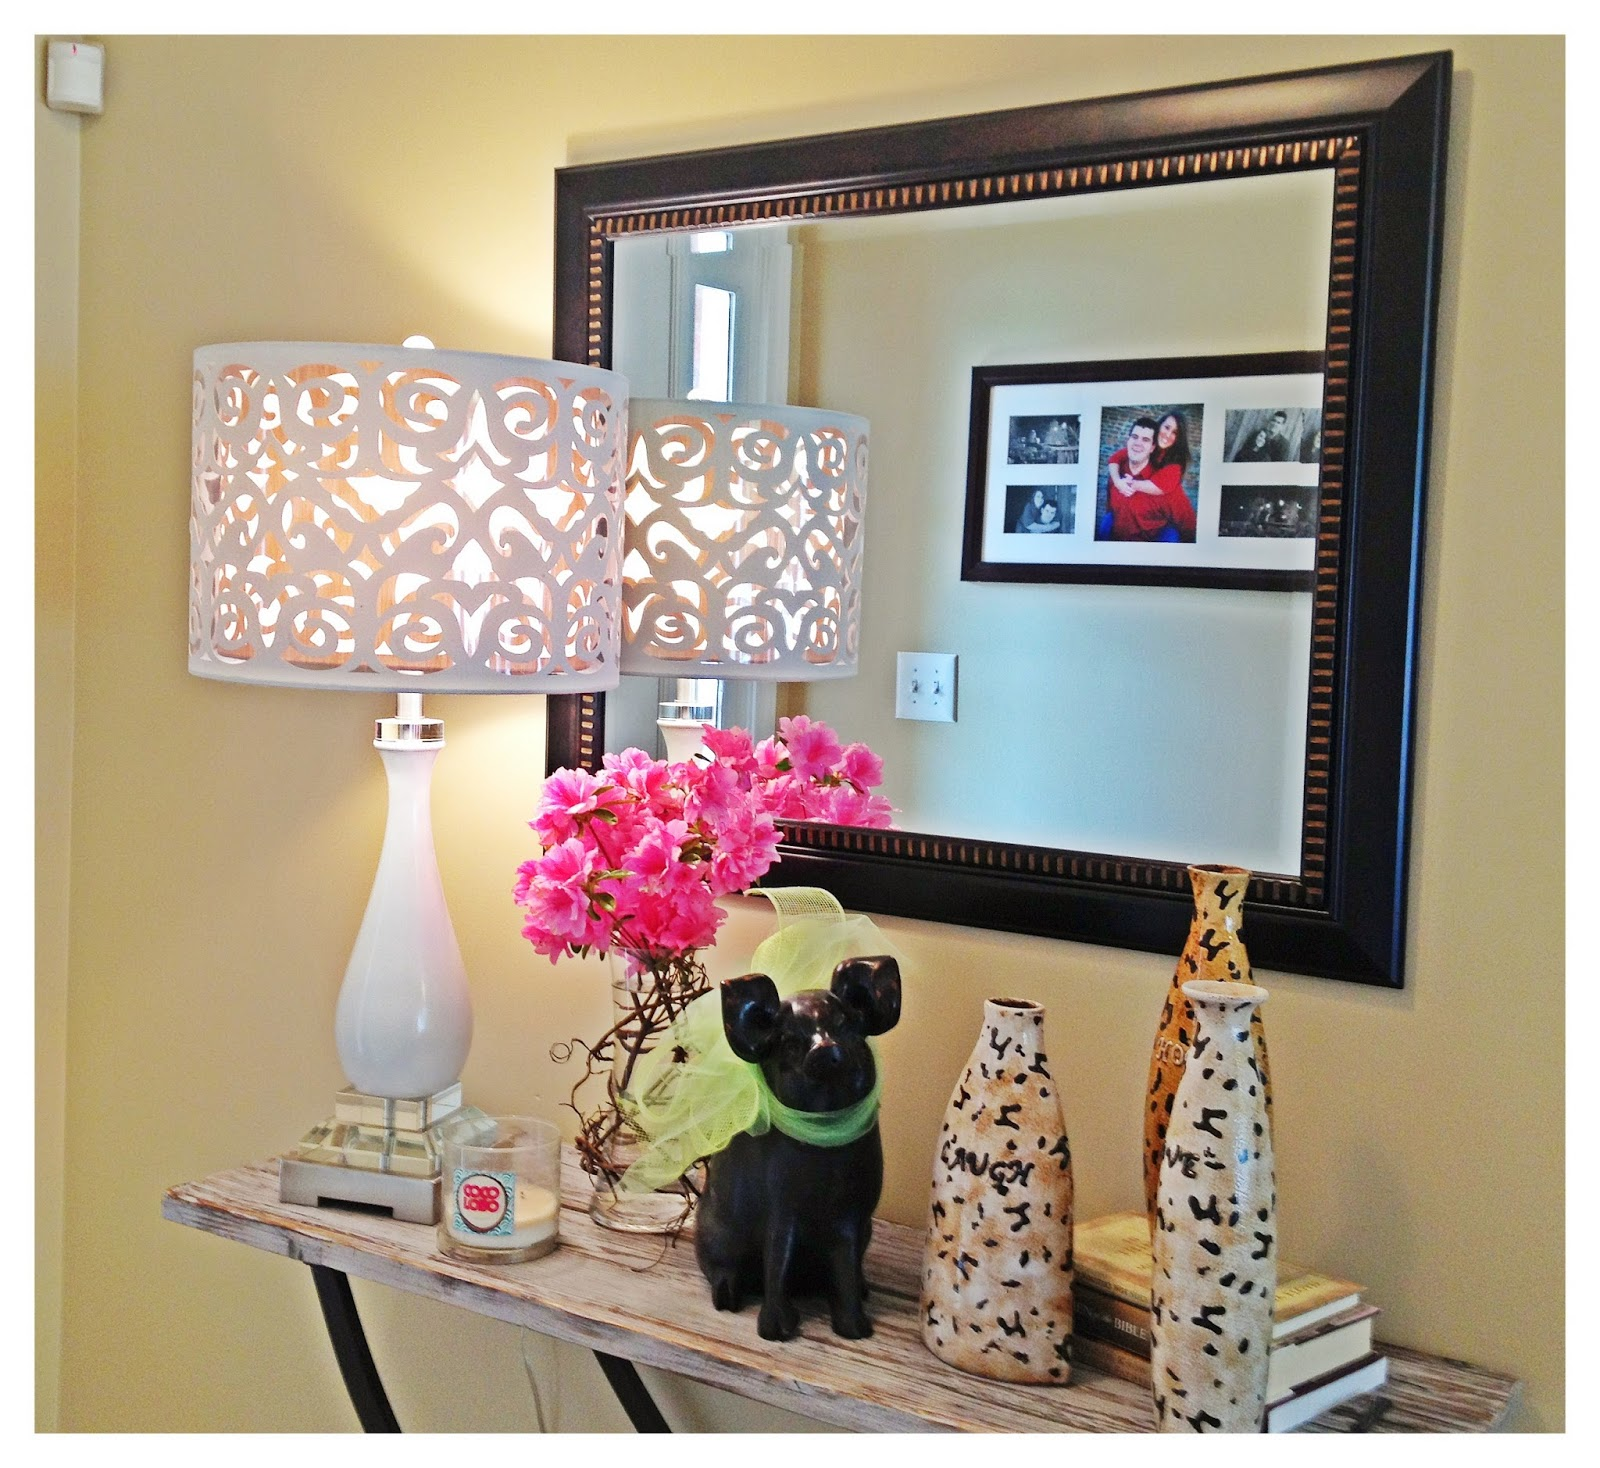 Southern House Restoration: How to Decorate Your Console Table